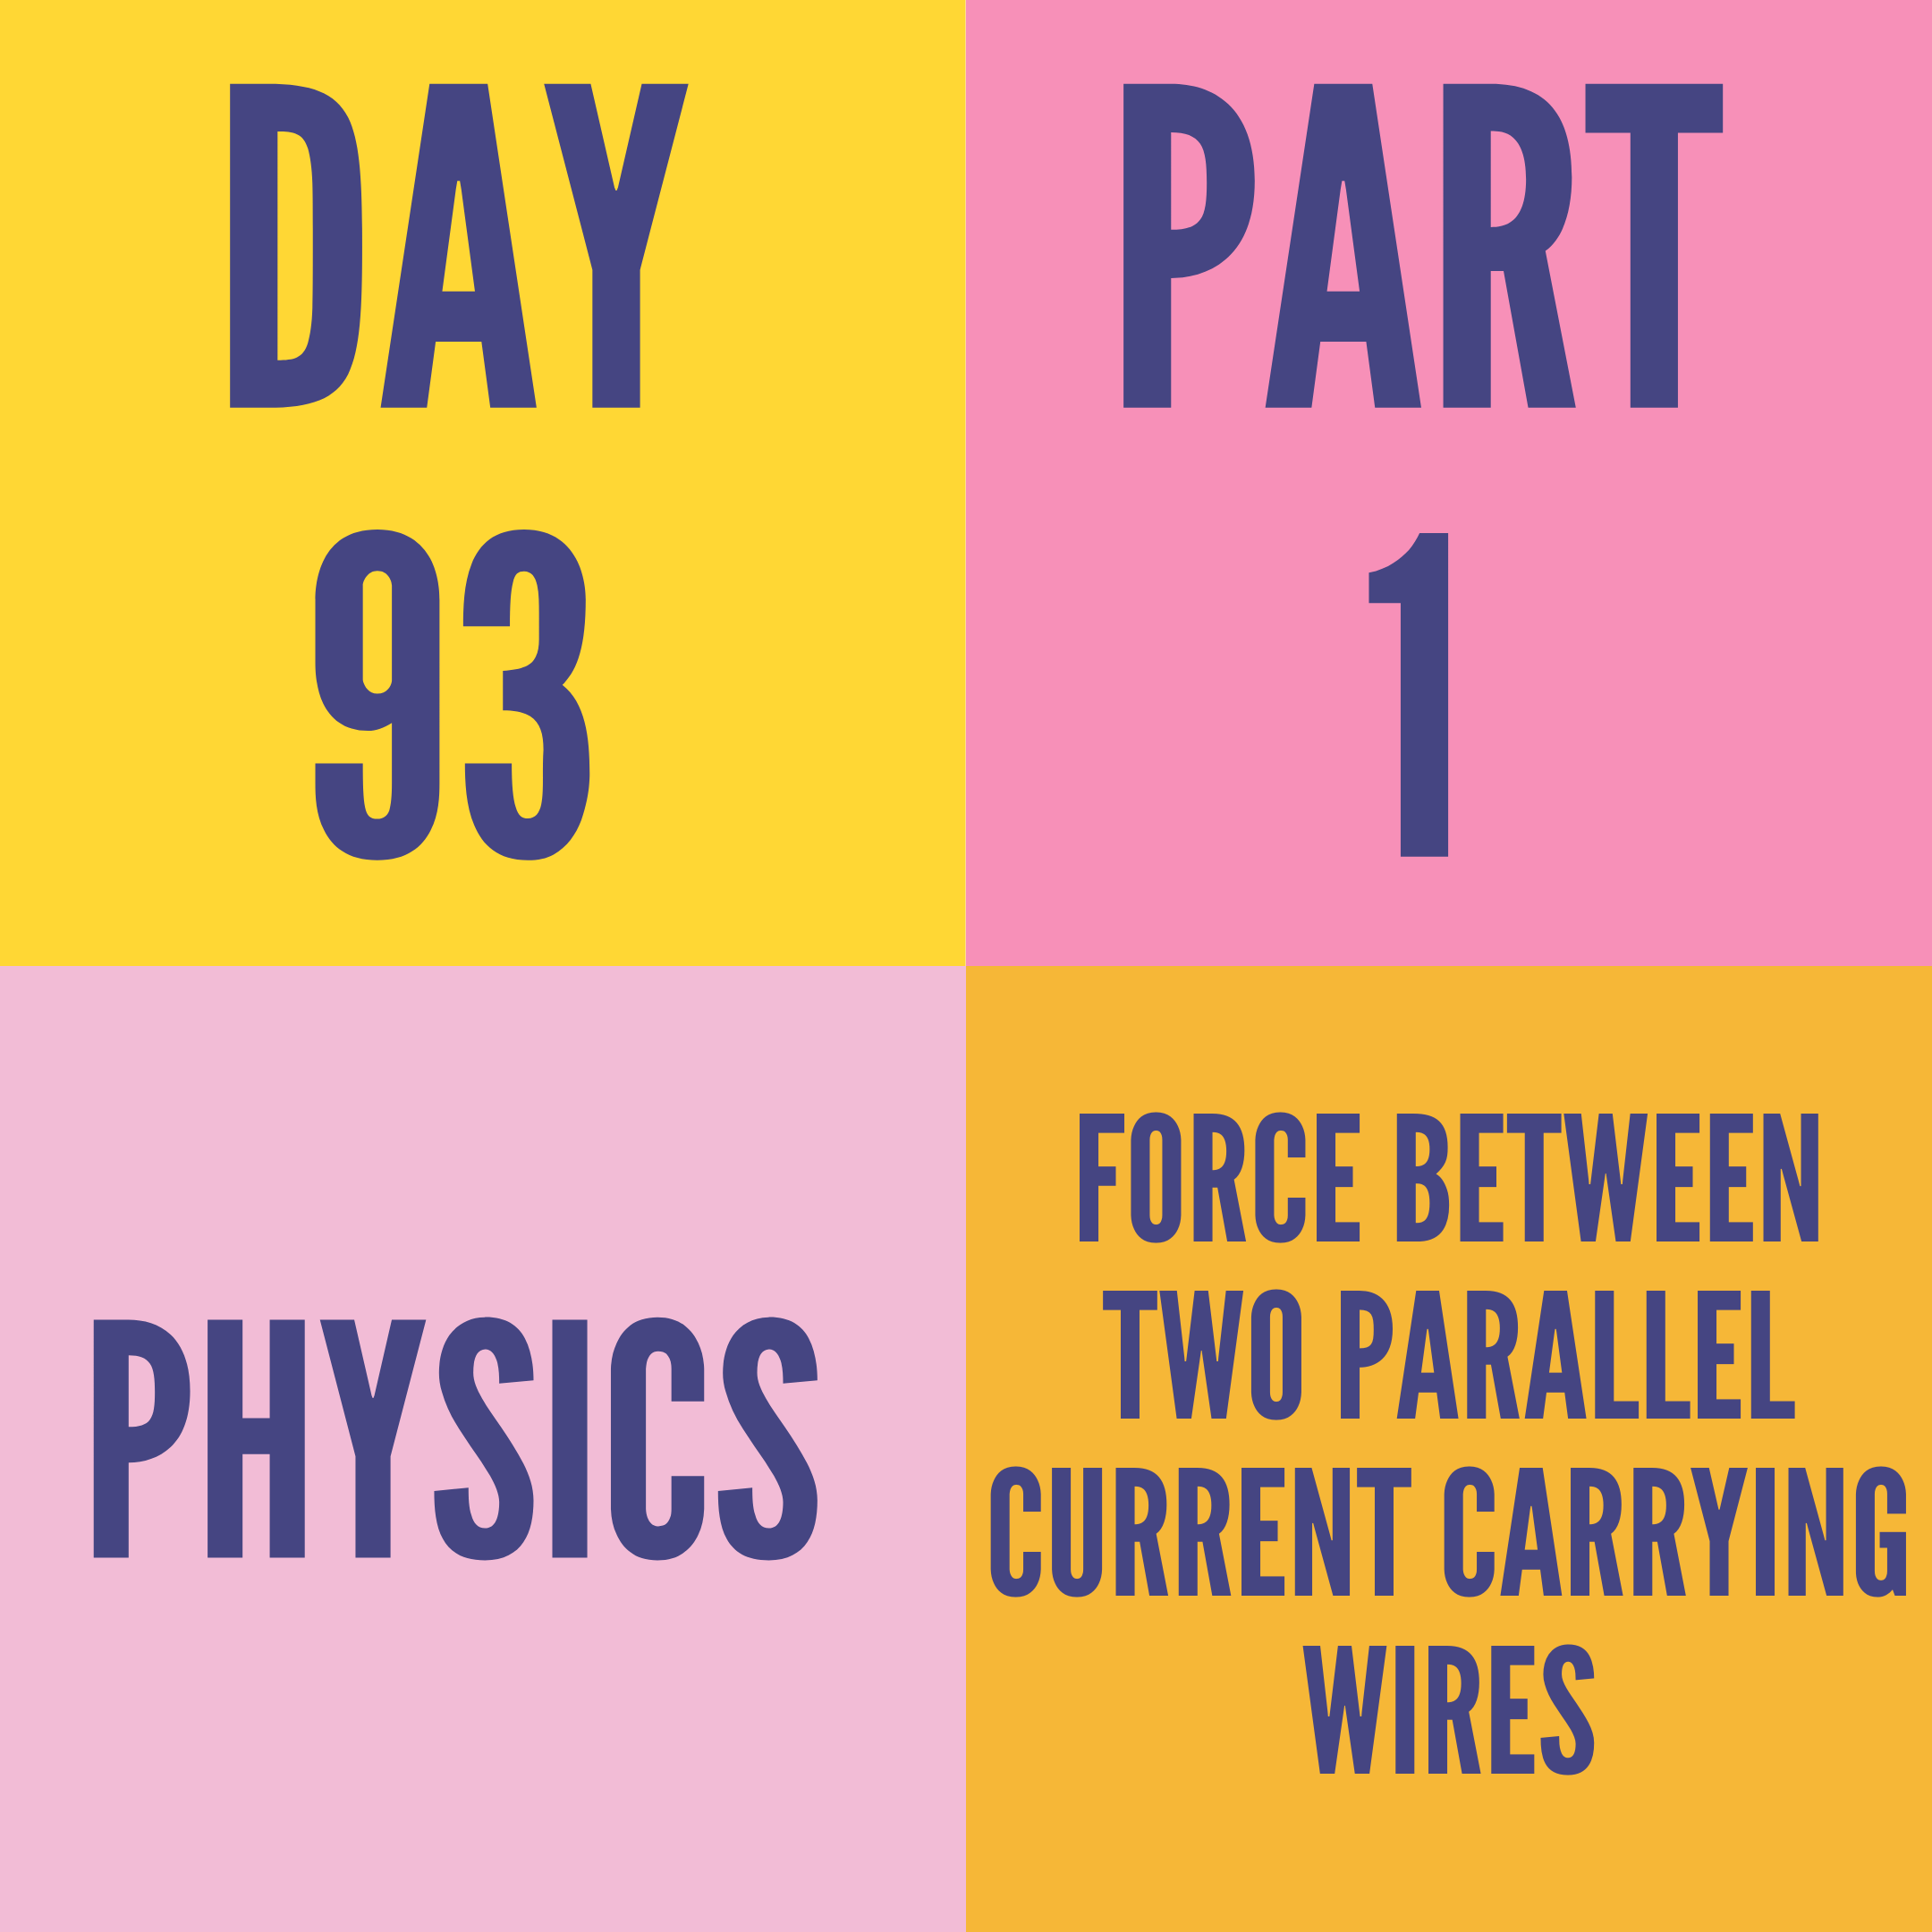 DAY-93 PART-1 FORCE BETWEENTWO PARALLEL CURRENT CARRYING WIRES